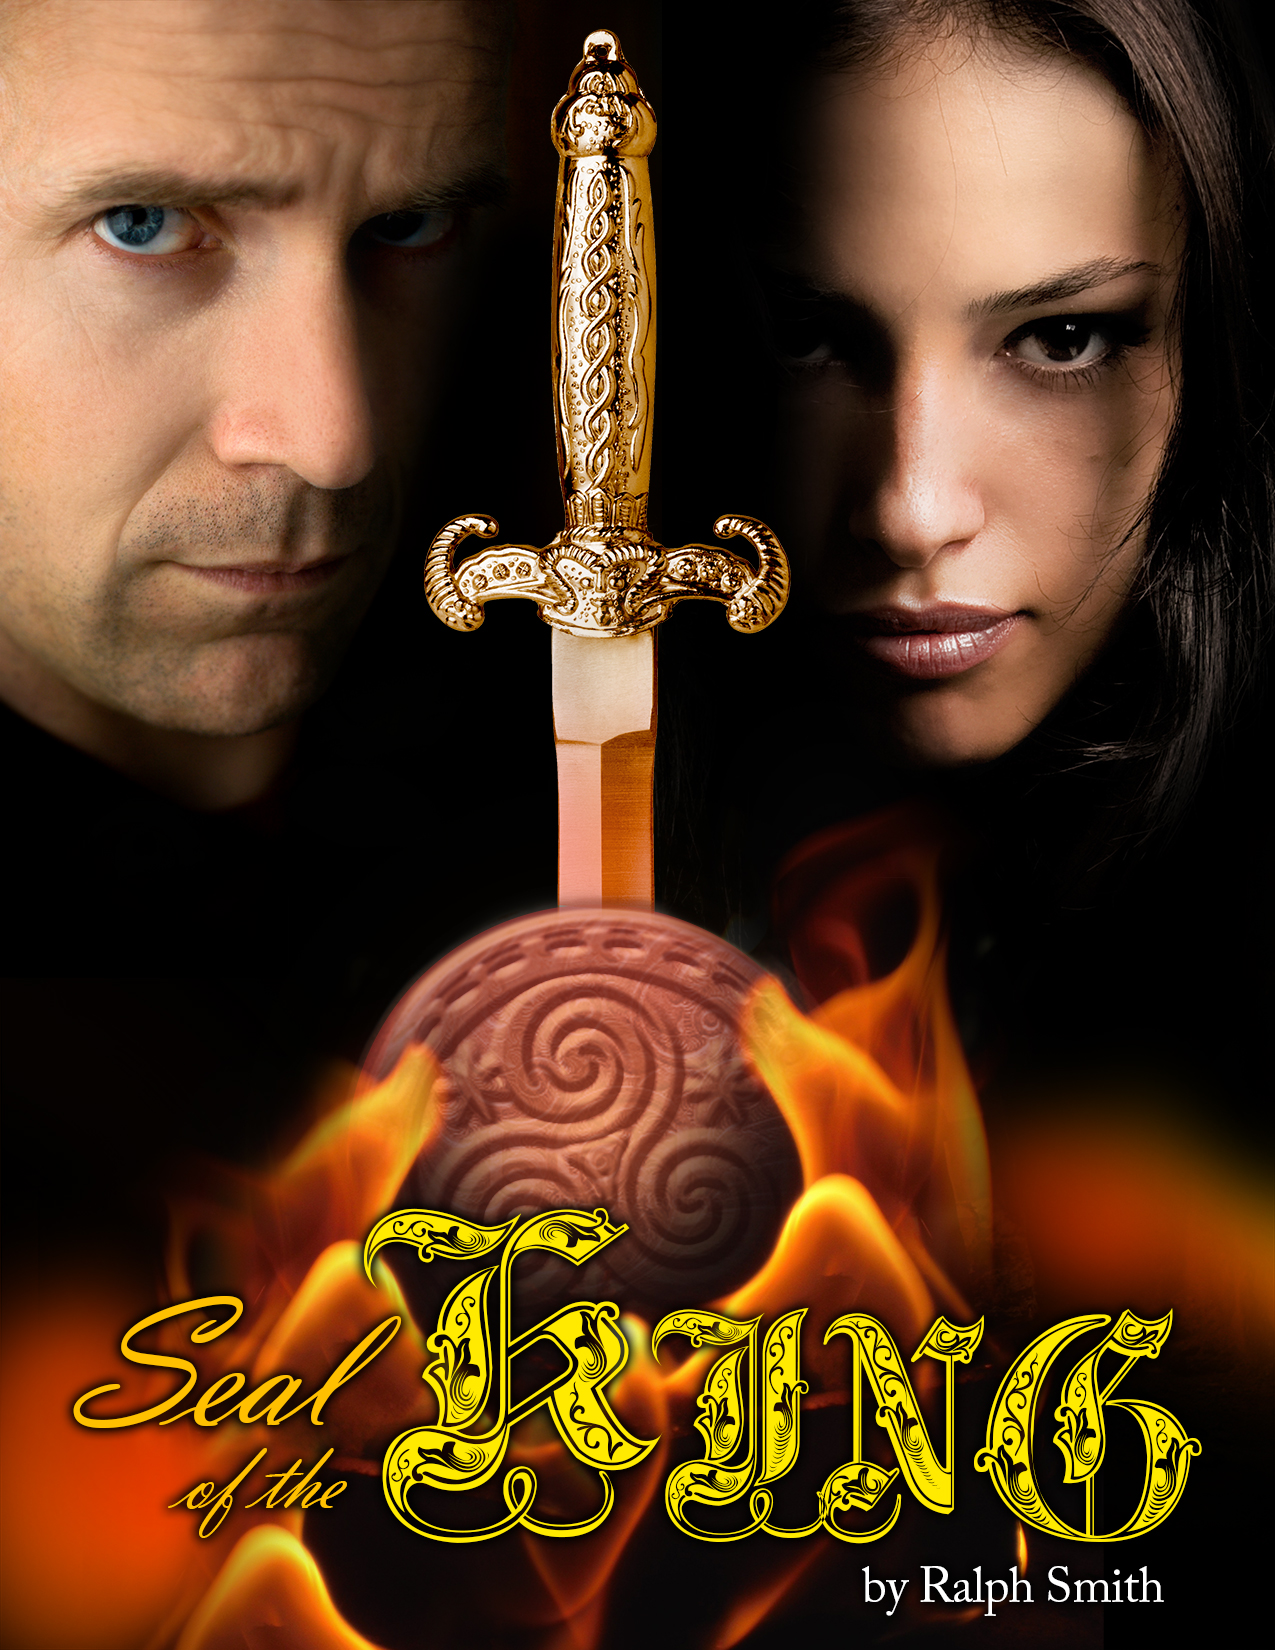 5.0 out of 5 stars Awesome read! Perfect blend of Adventure and Romance